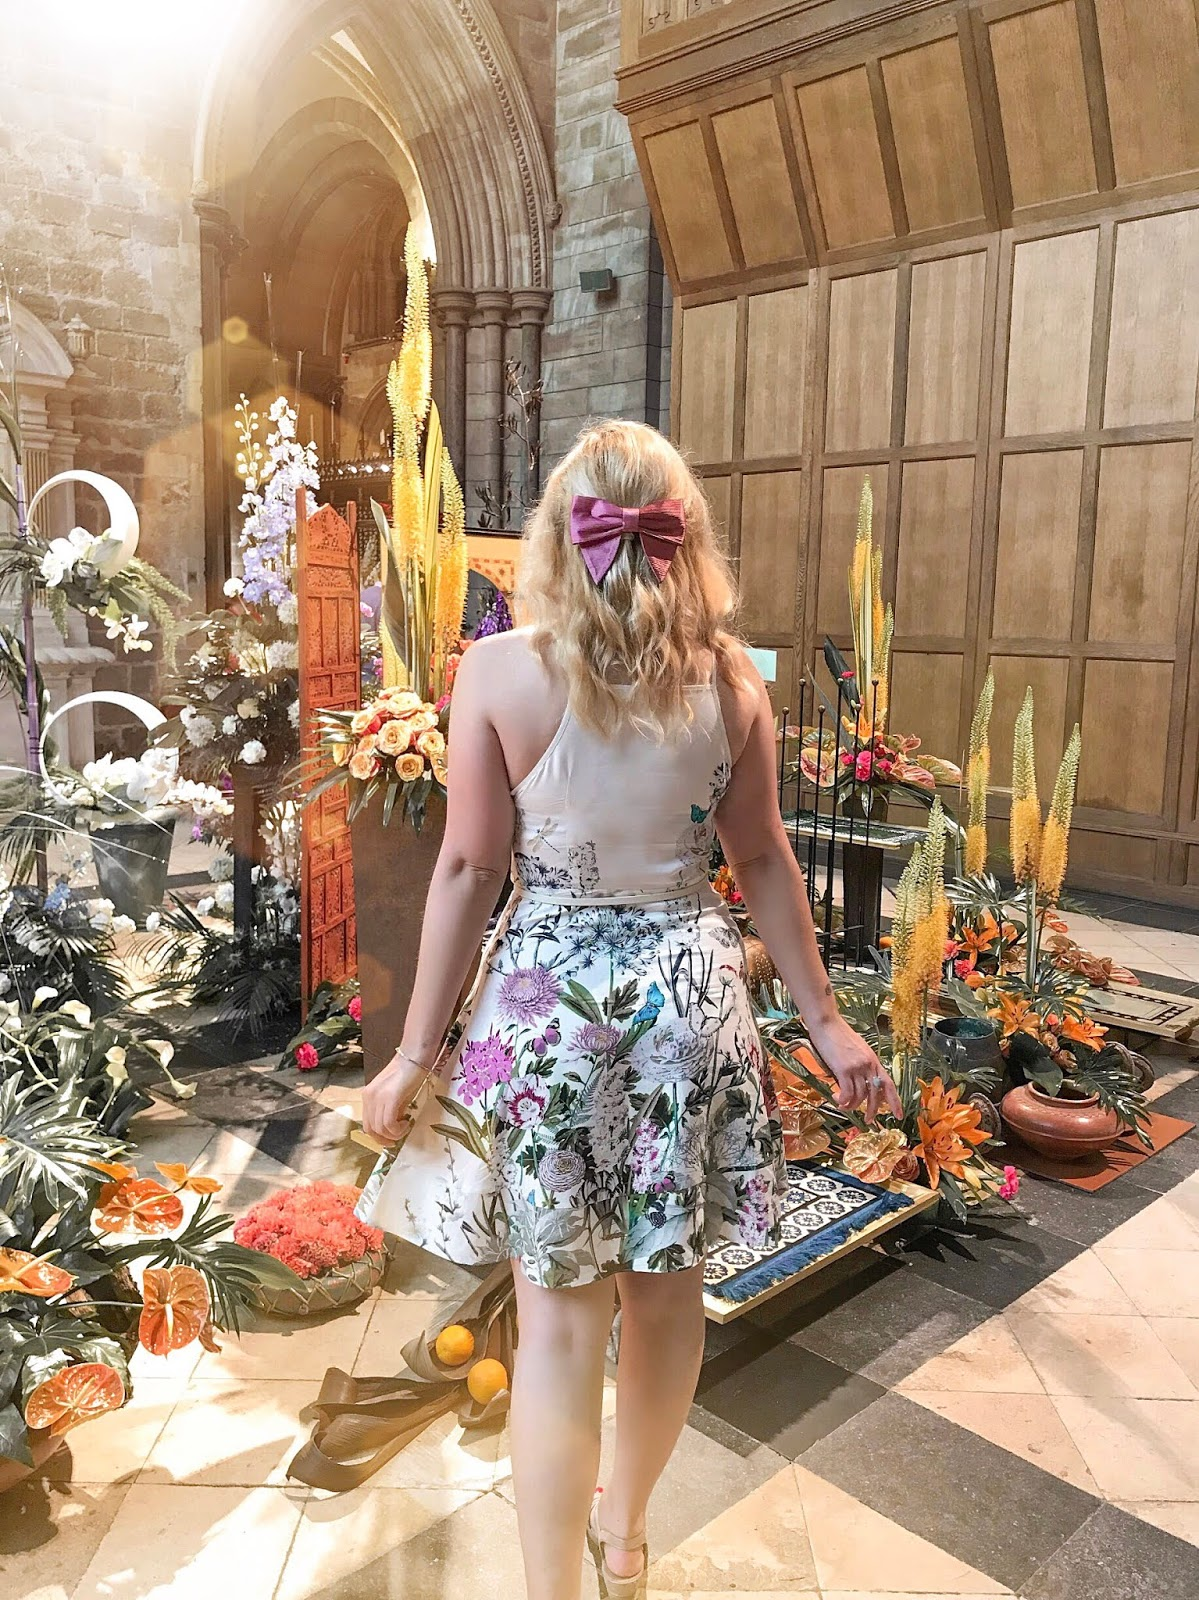 Stop & Smell The Flowers - Life's Moments With Pandora, Katie Kirk Loves, UK Blogger, Pandora Life's Moments, Pandora Jewellery, Pandora Jewelry, Chichester Festival of Flowers, West Sussex, Flower Festival, Spring Blooms, Flower Displays, Spring Flowers, Oasis Fashion, Oasis Natural History Museum Collection, UK Fashion Blogger, UK Style Blogger, Fashion Influencer, Style Influencer, UK Influencer